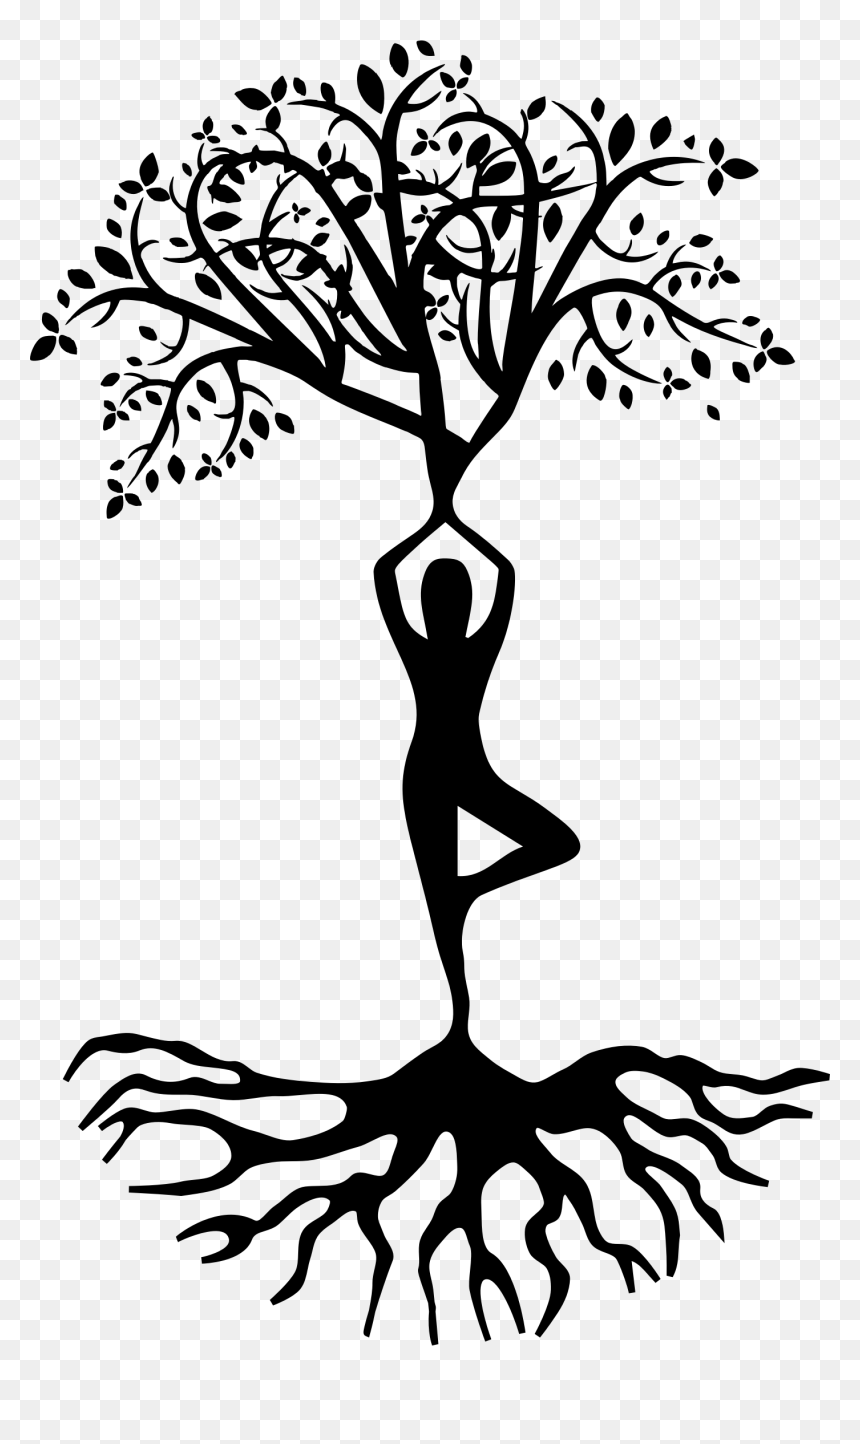 Tree With Roots Silhouette Png Clipart Yoga Tree Pose Transparent Png Vhv